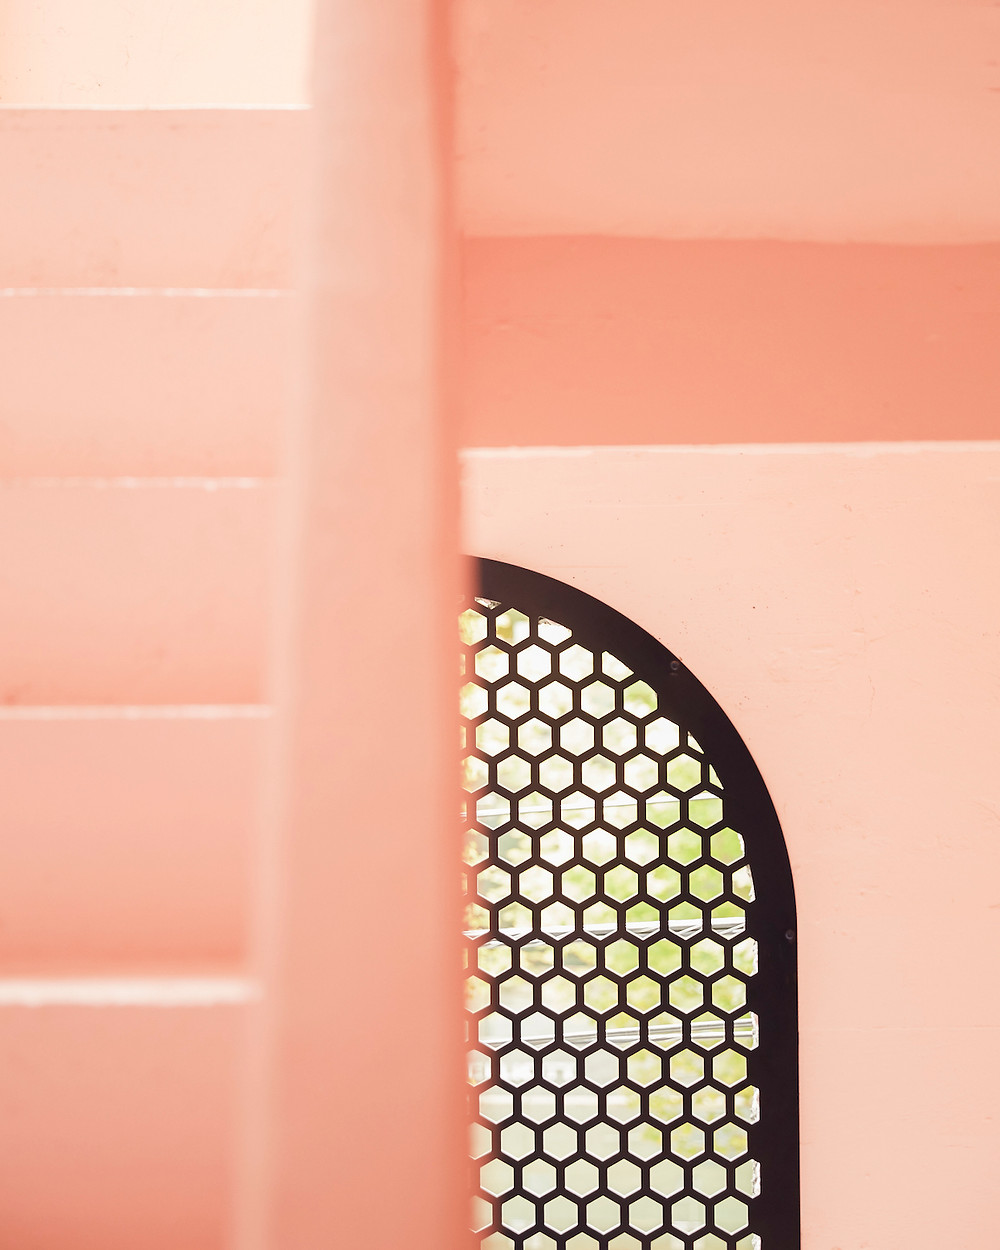 pink stairs, pink walls, arched window with grate